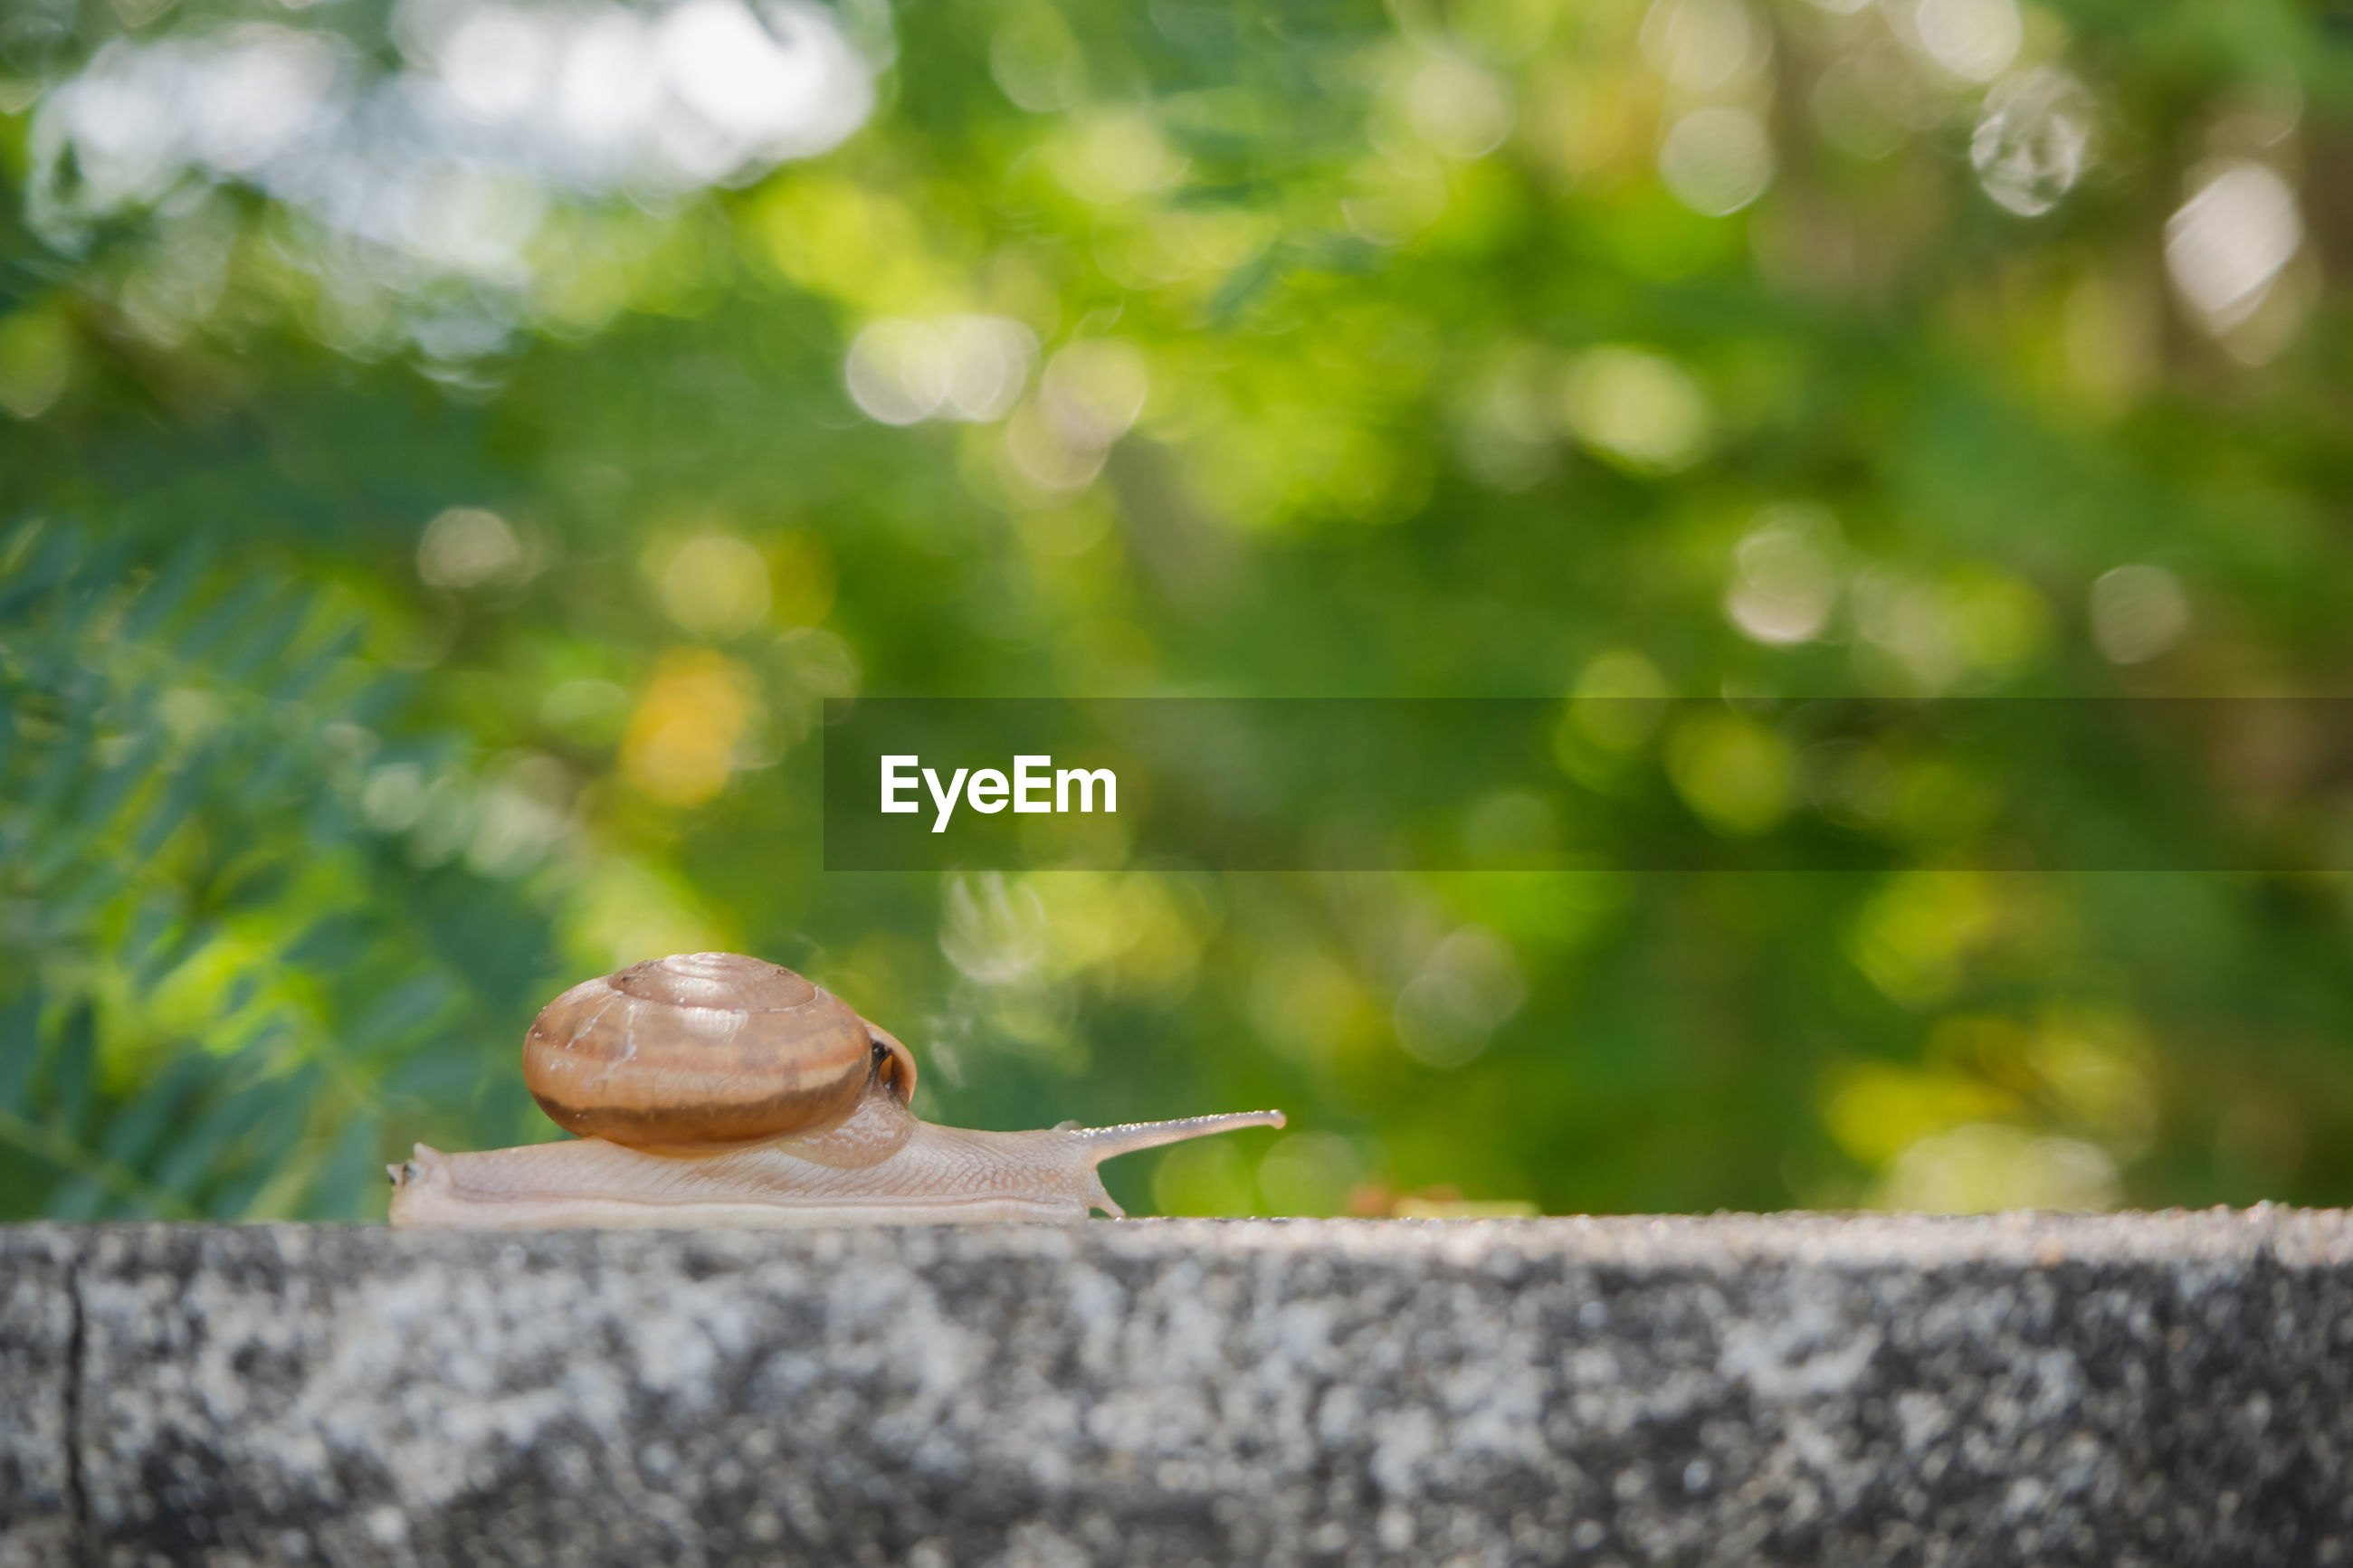 CLOSE-UP OF SNAIL ON RETAINING WALL AGAINST BLURRED BACKGROUND